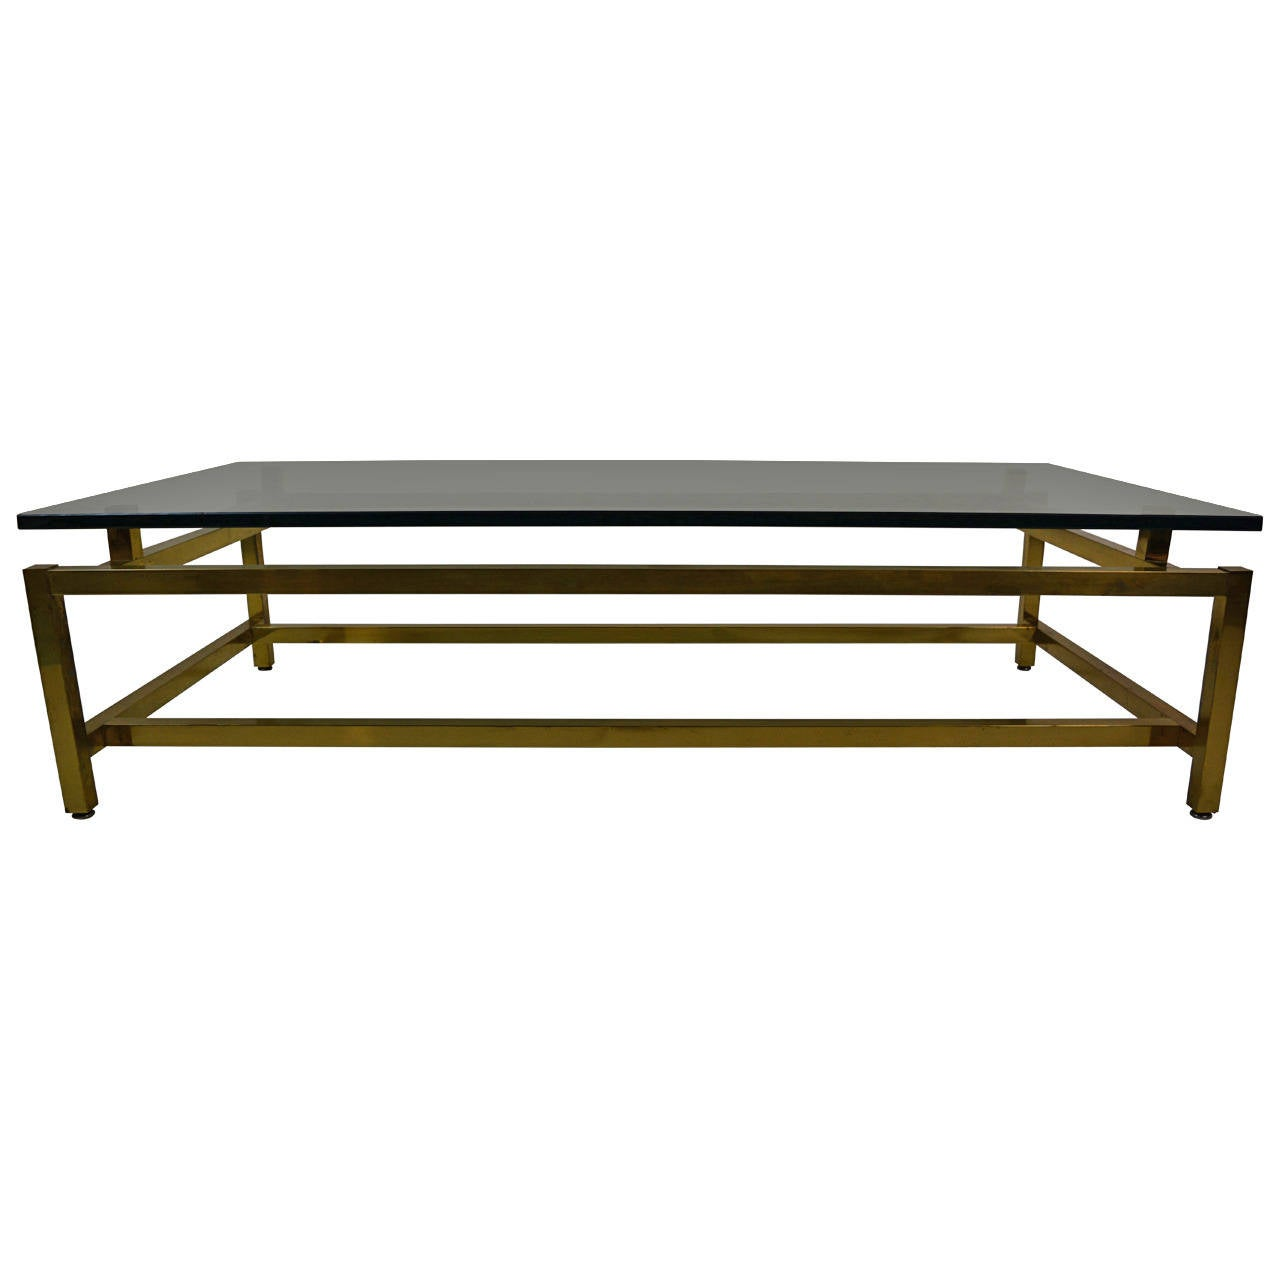 Solid brass architectural cocktail table at 1stdibs for Architectural coffee table